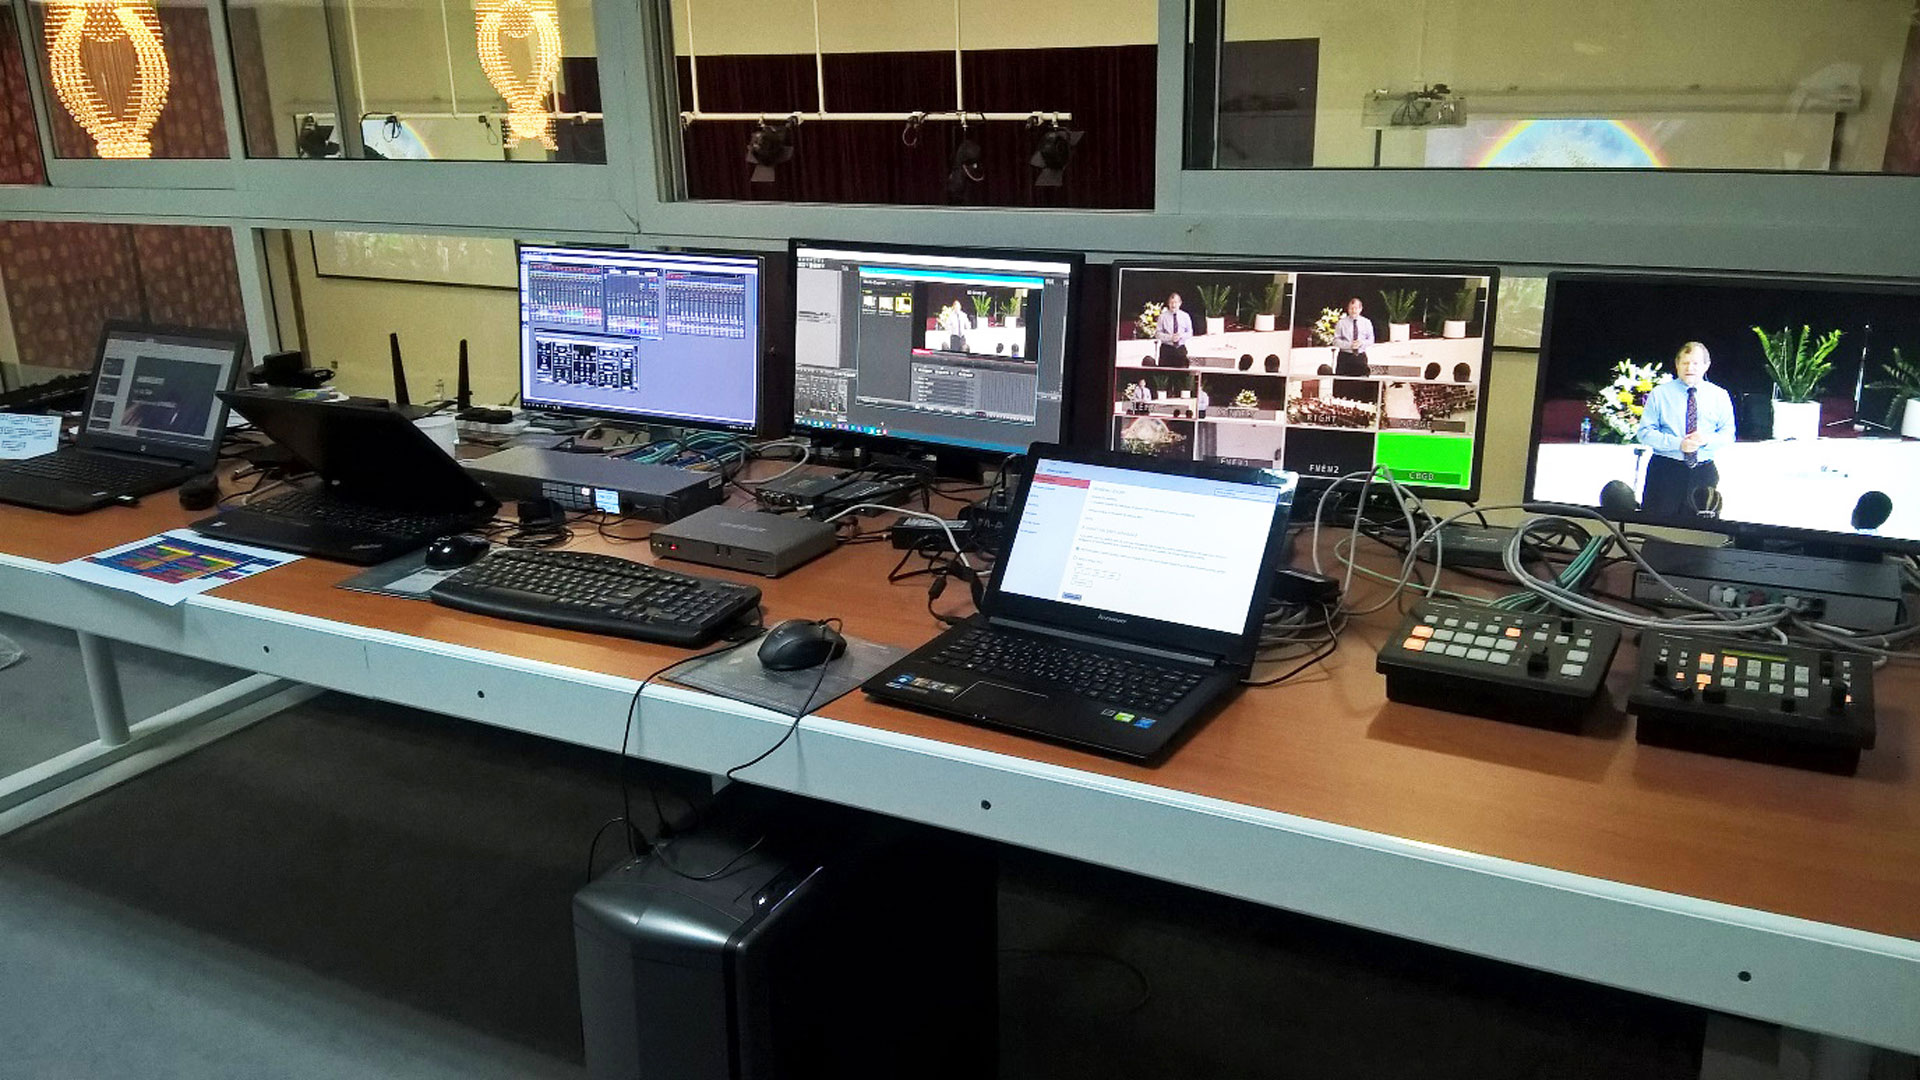 AV setup with the Matrox Monarch HDX H.264 streaming and recording appliance for the Seventh-Day Adventist Church's annual Campmeeting event.